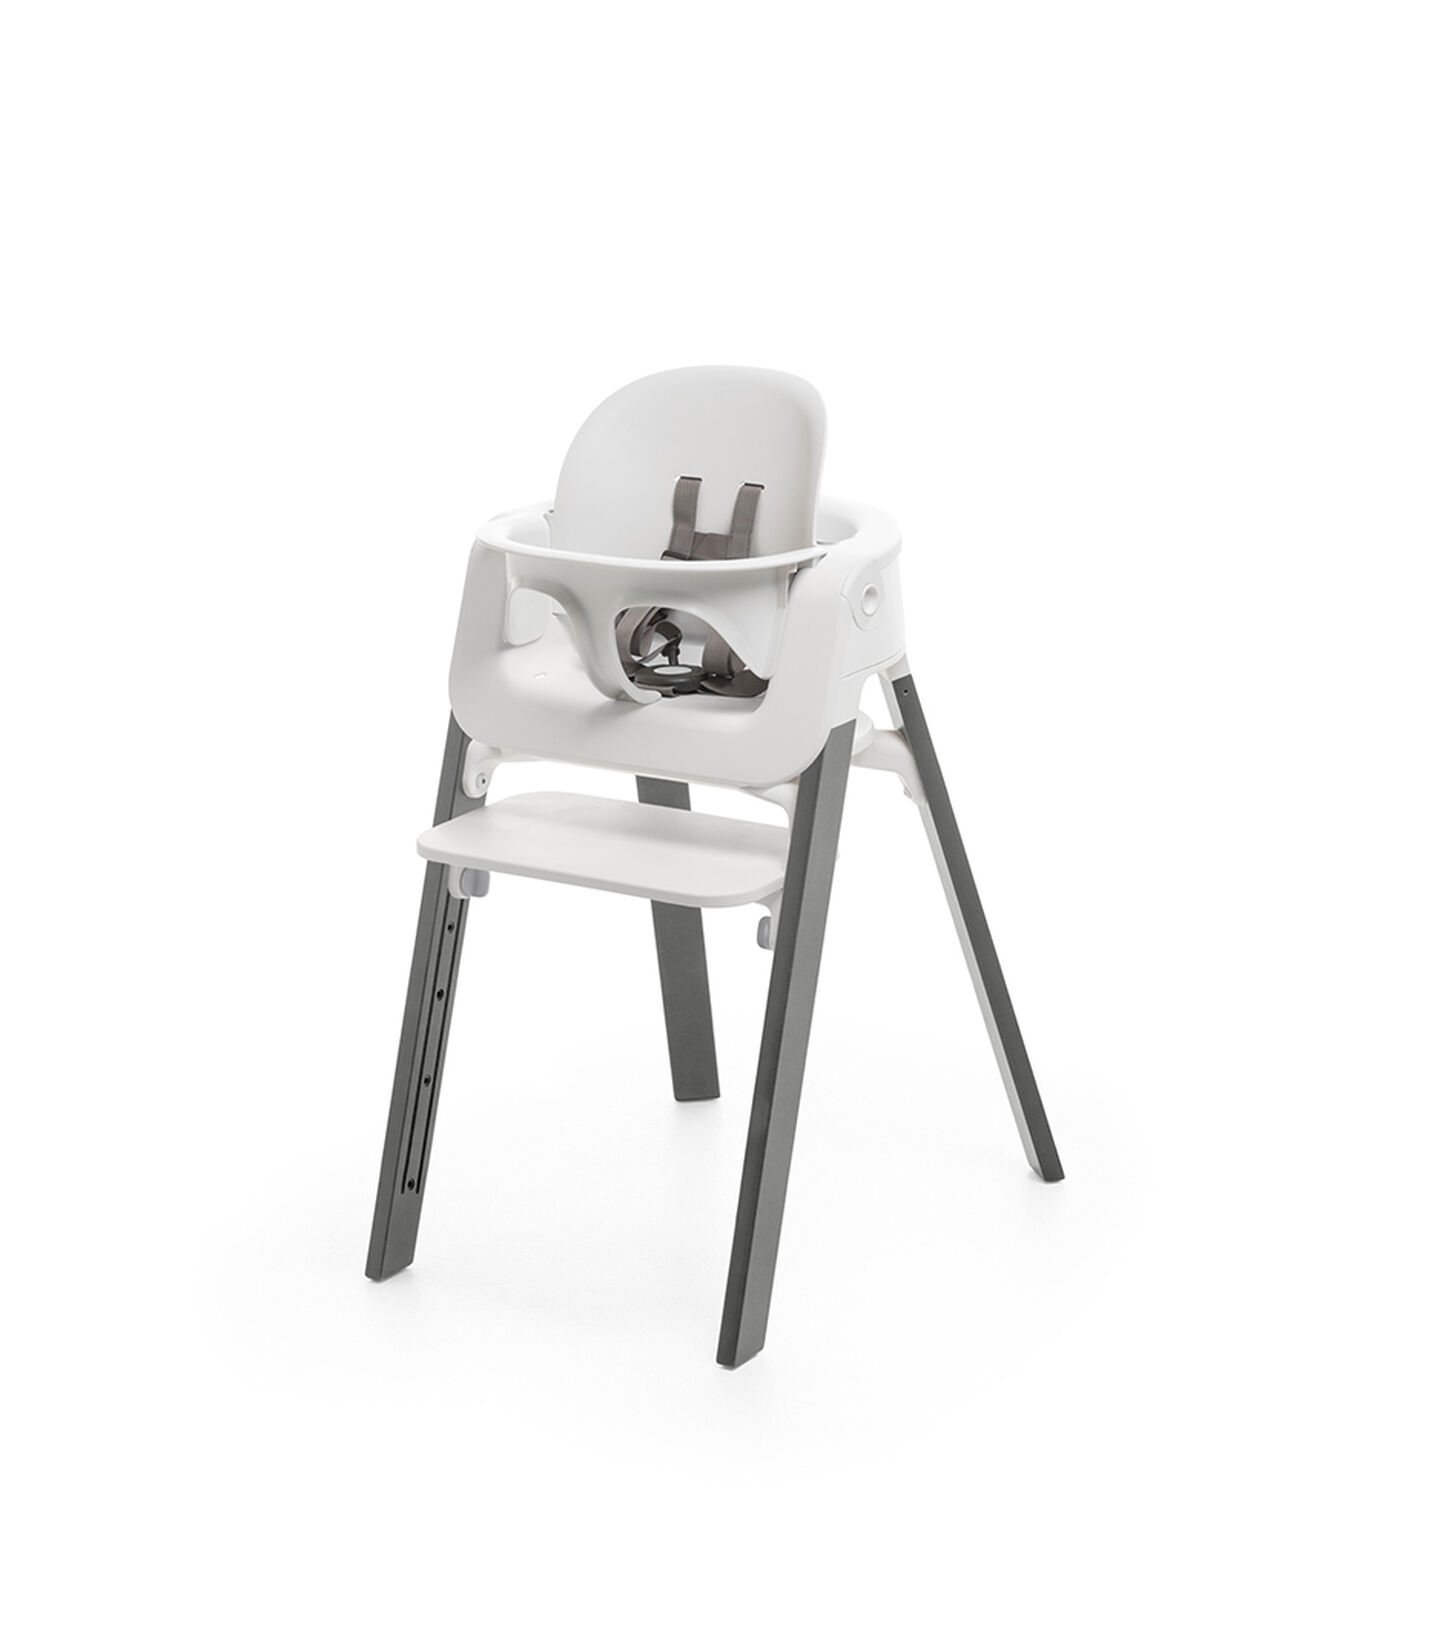 Accessories. Baby Set. Mounted on Stokke Steps highchair.